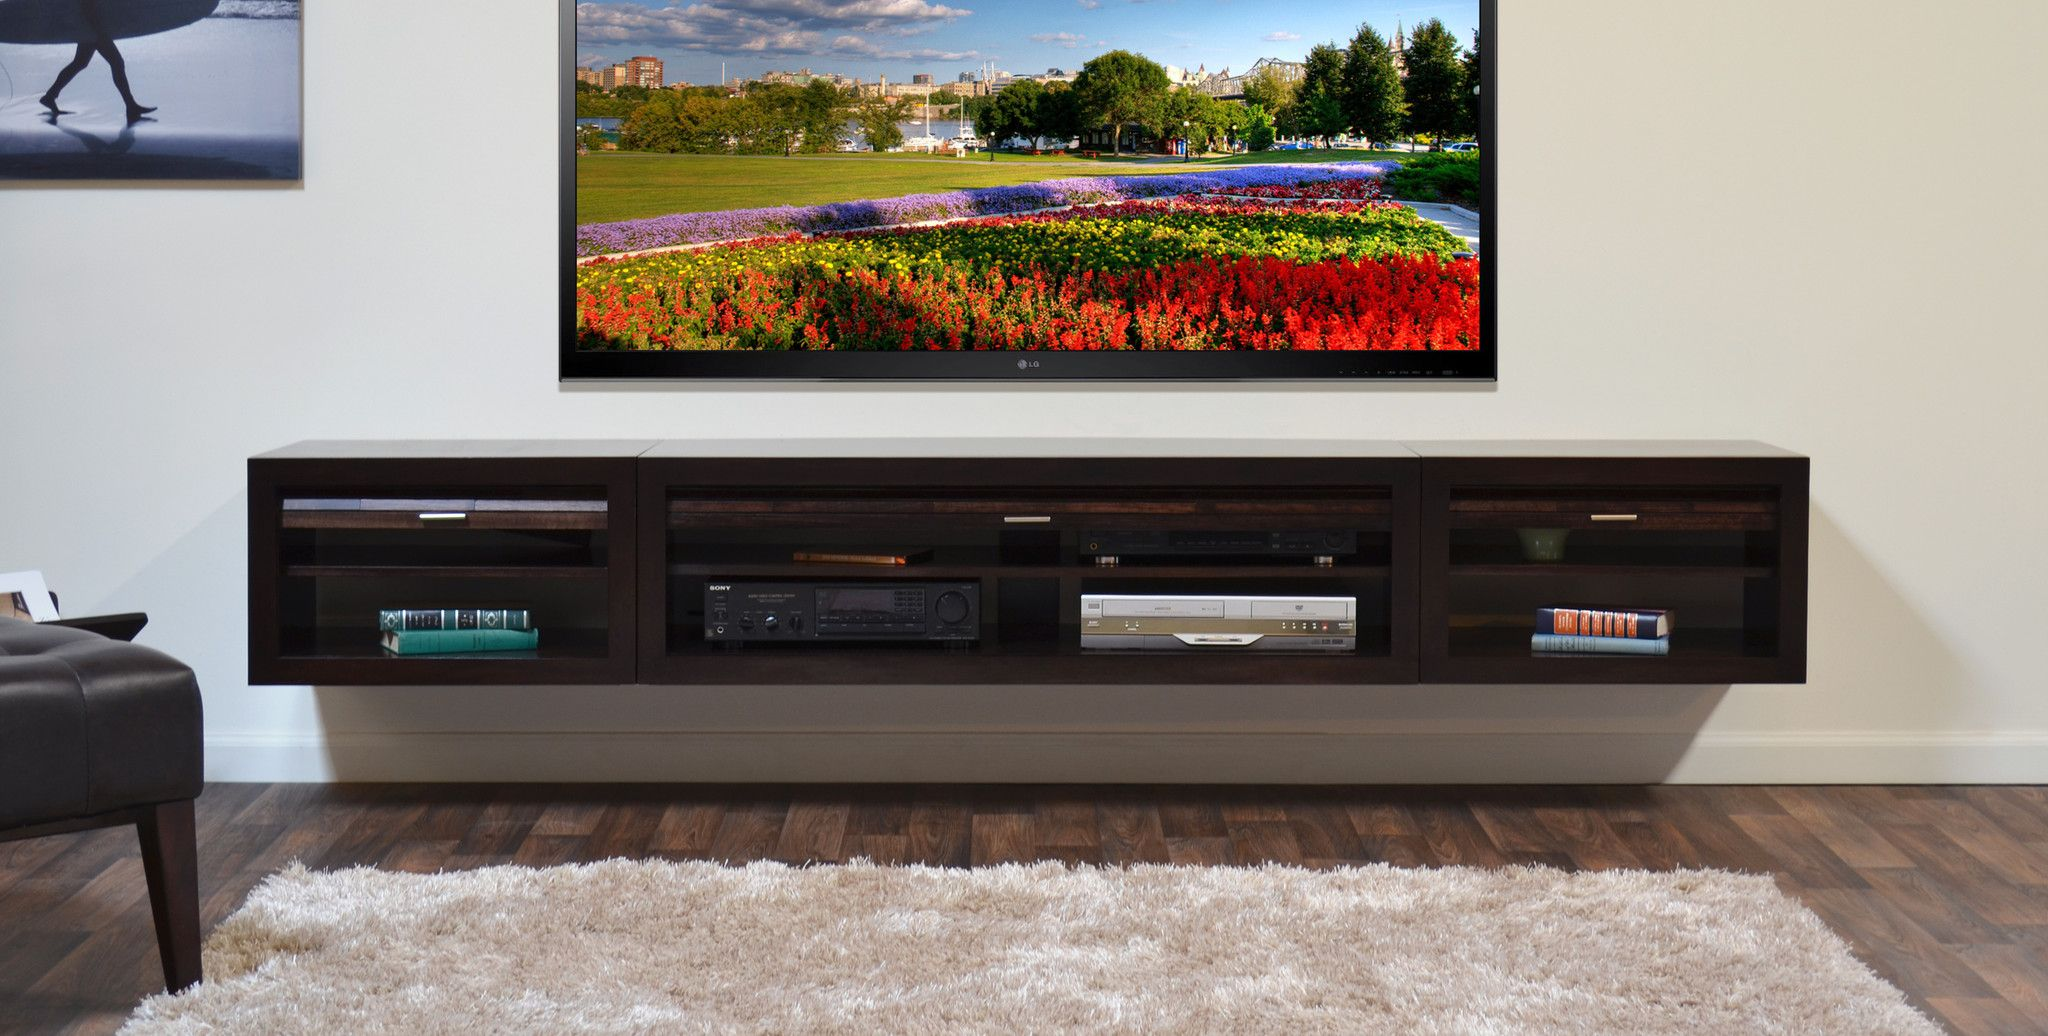 Resemblance Of Floating Media Center Stylish And Space Saving  # Meubles Pose Television